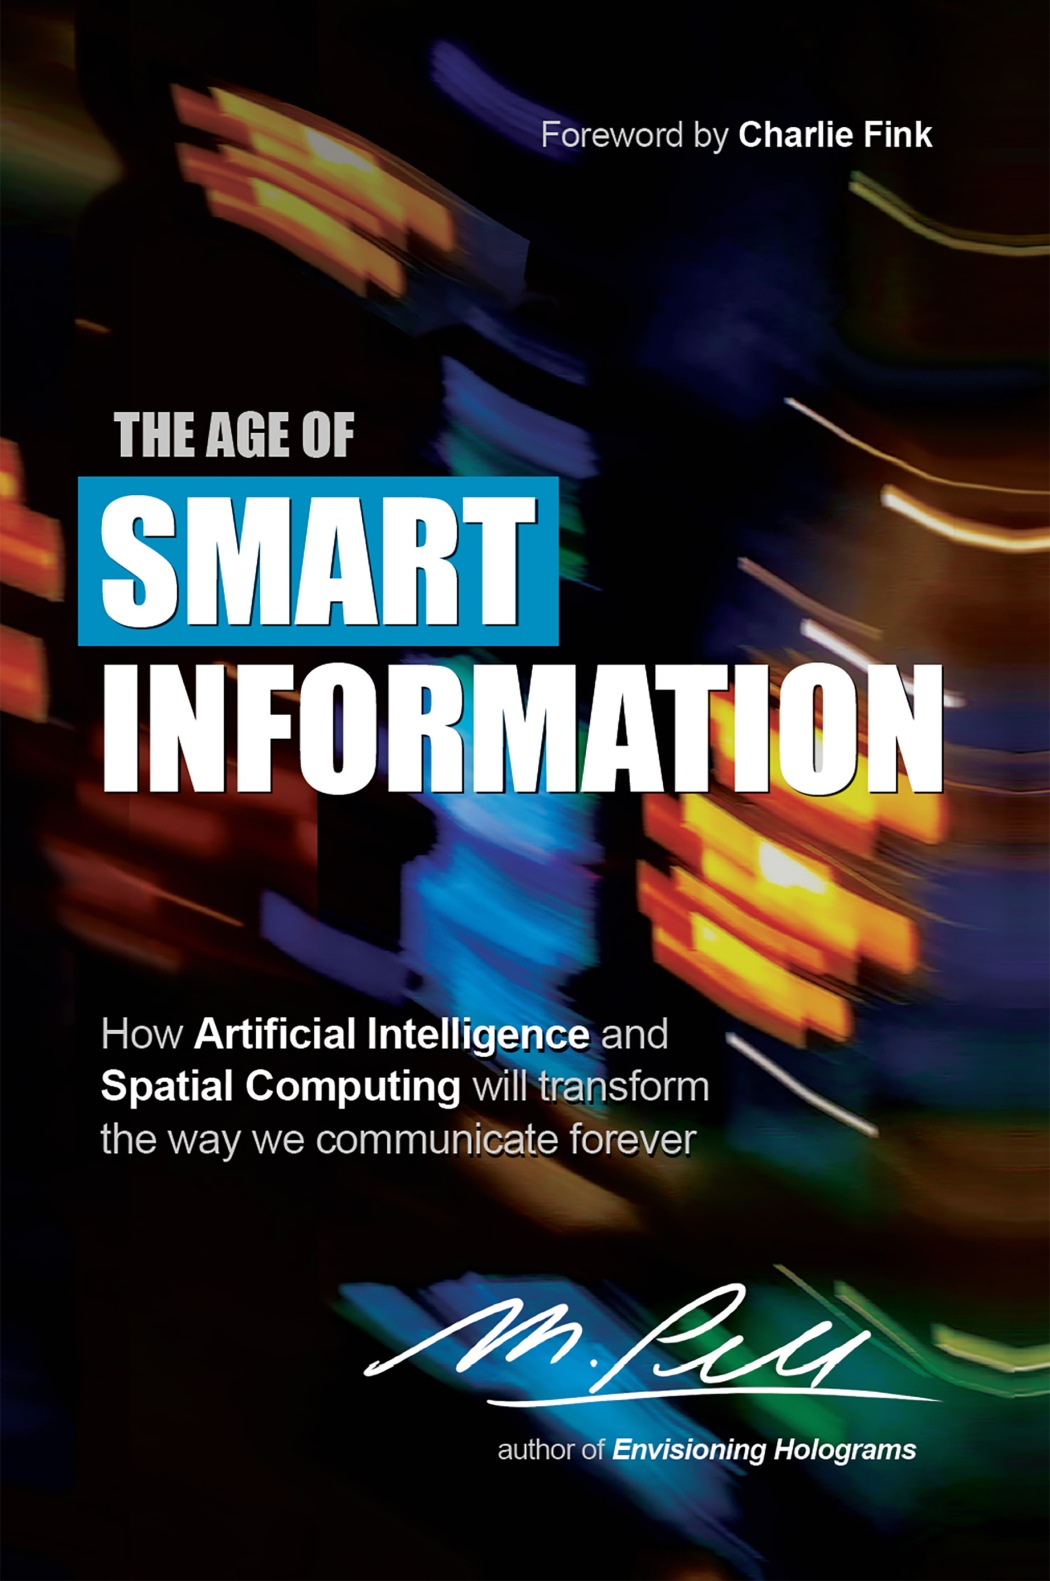 TheAgeOfSmartInformation_MPell_cover_Amazon